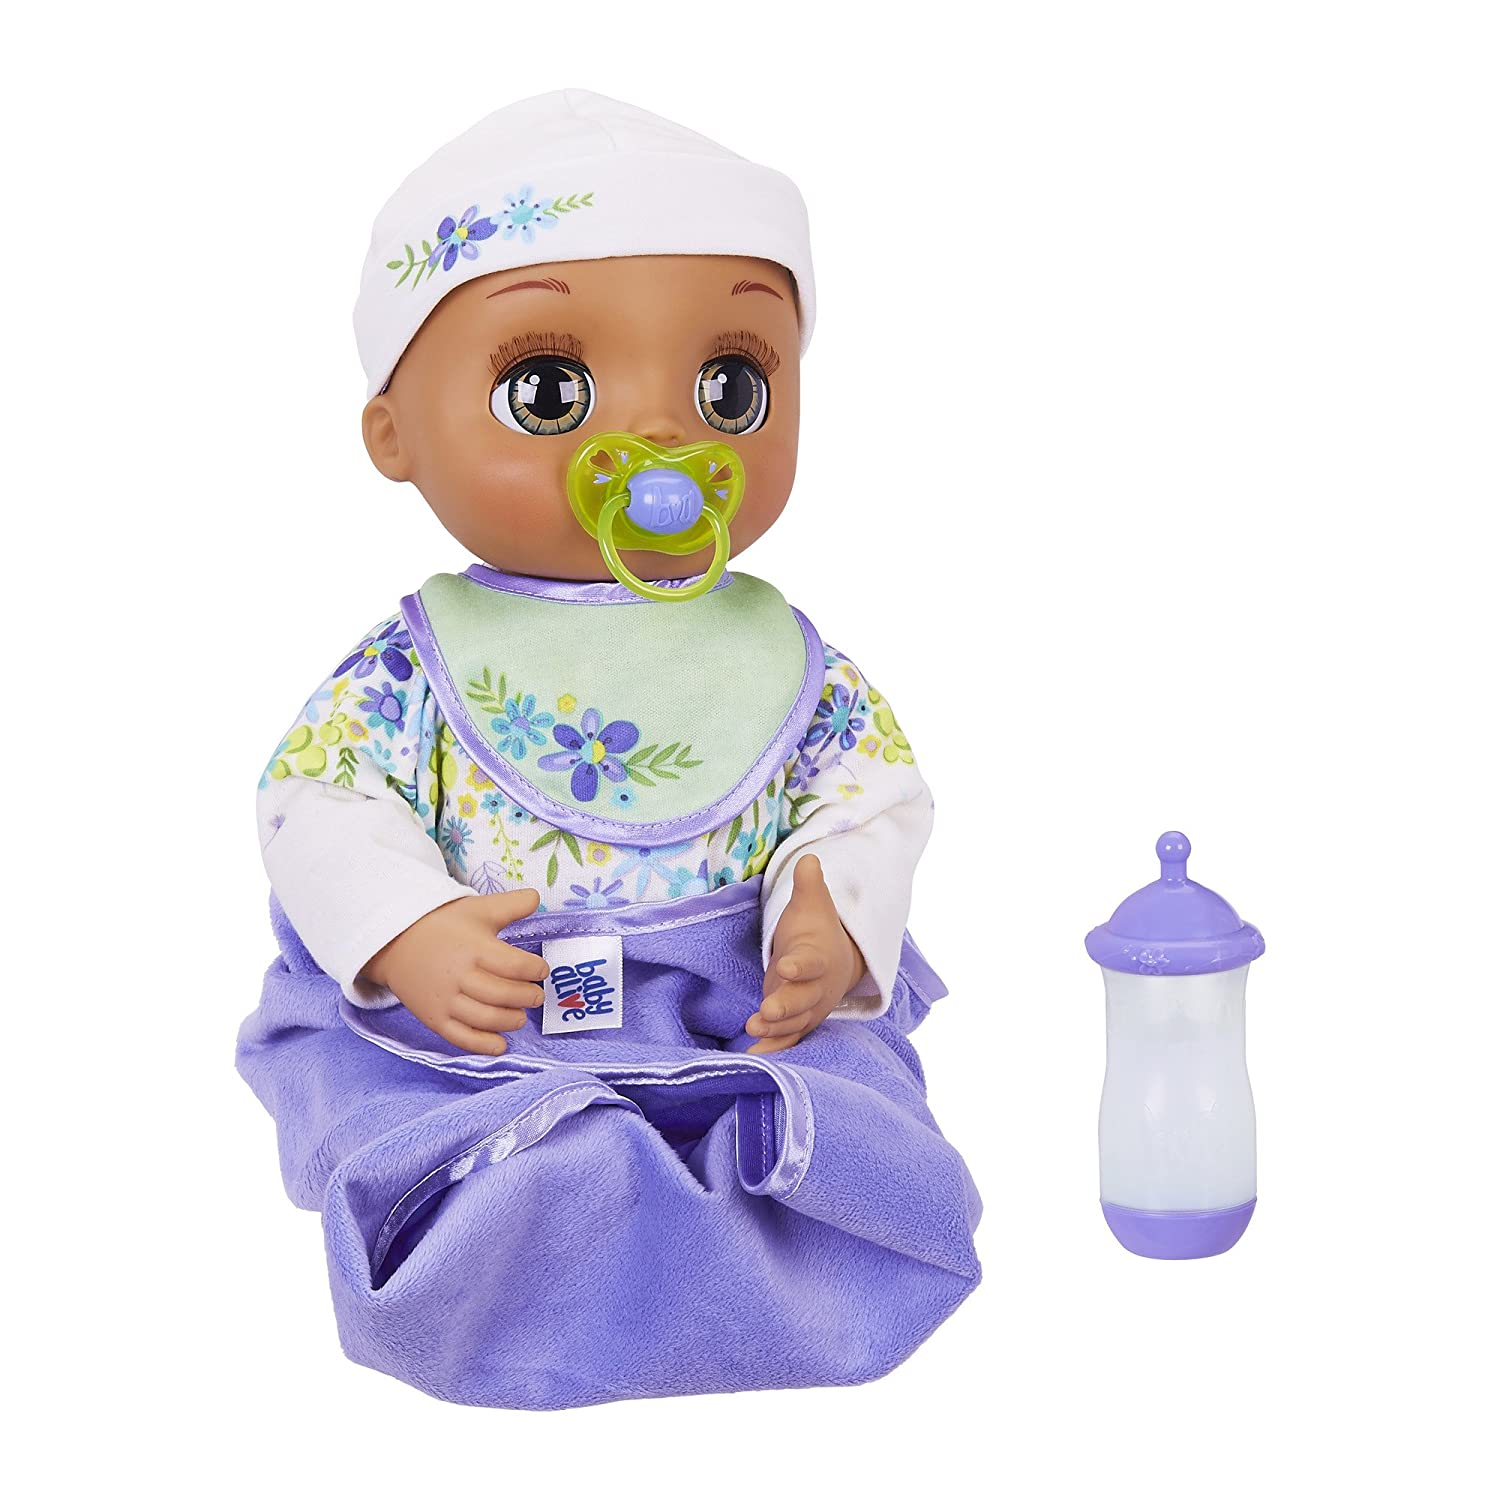 What Size Clothes Fit Baby Alive Real As Can Be - Baby Viewer